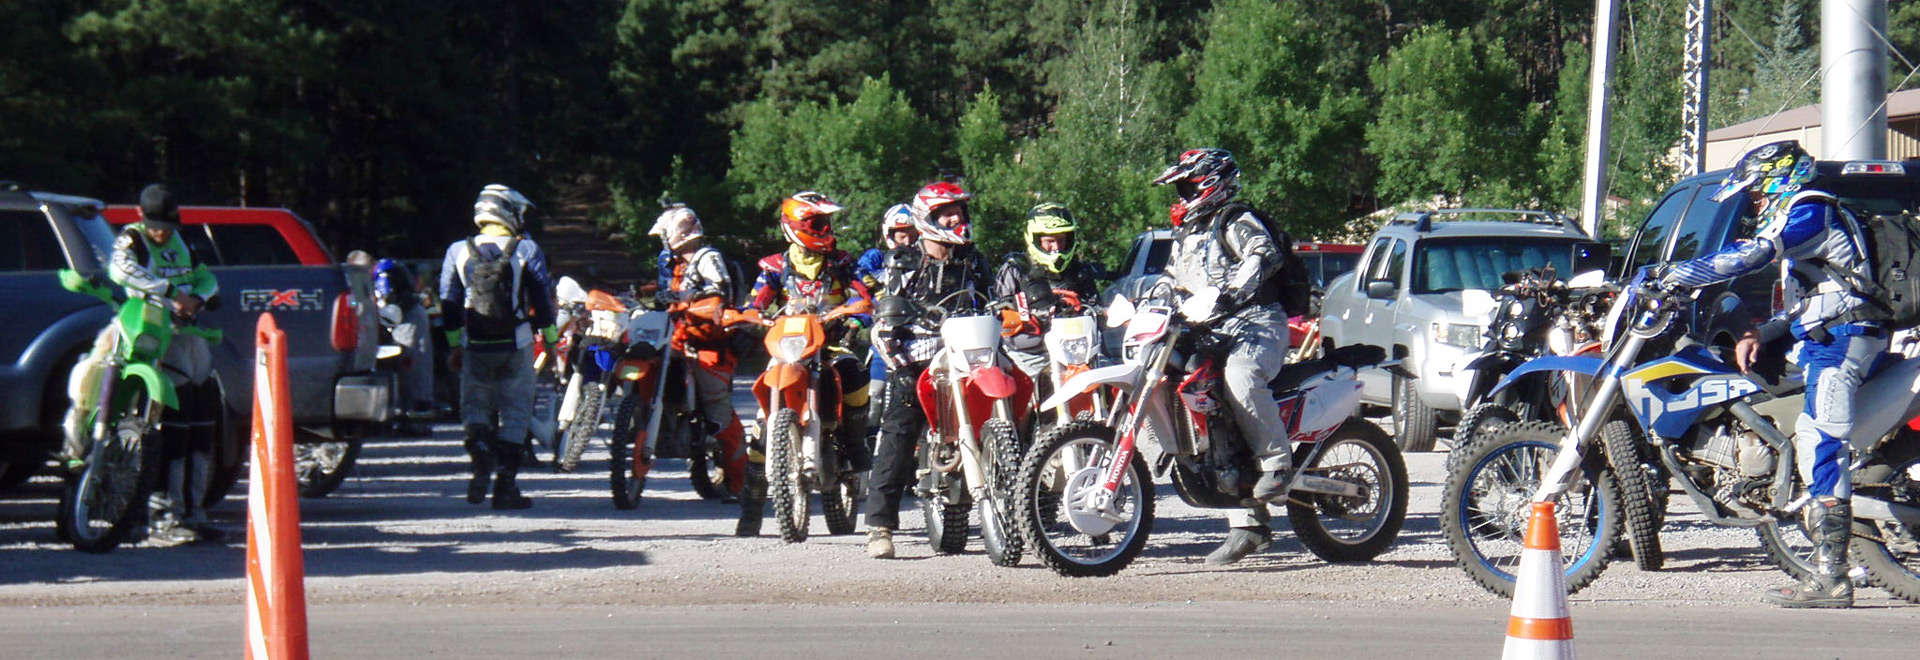 motocross line-up